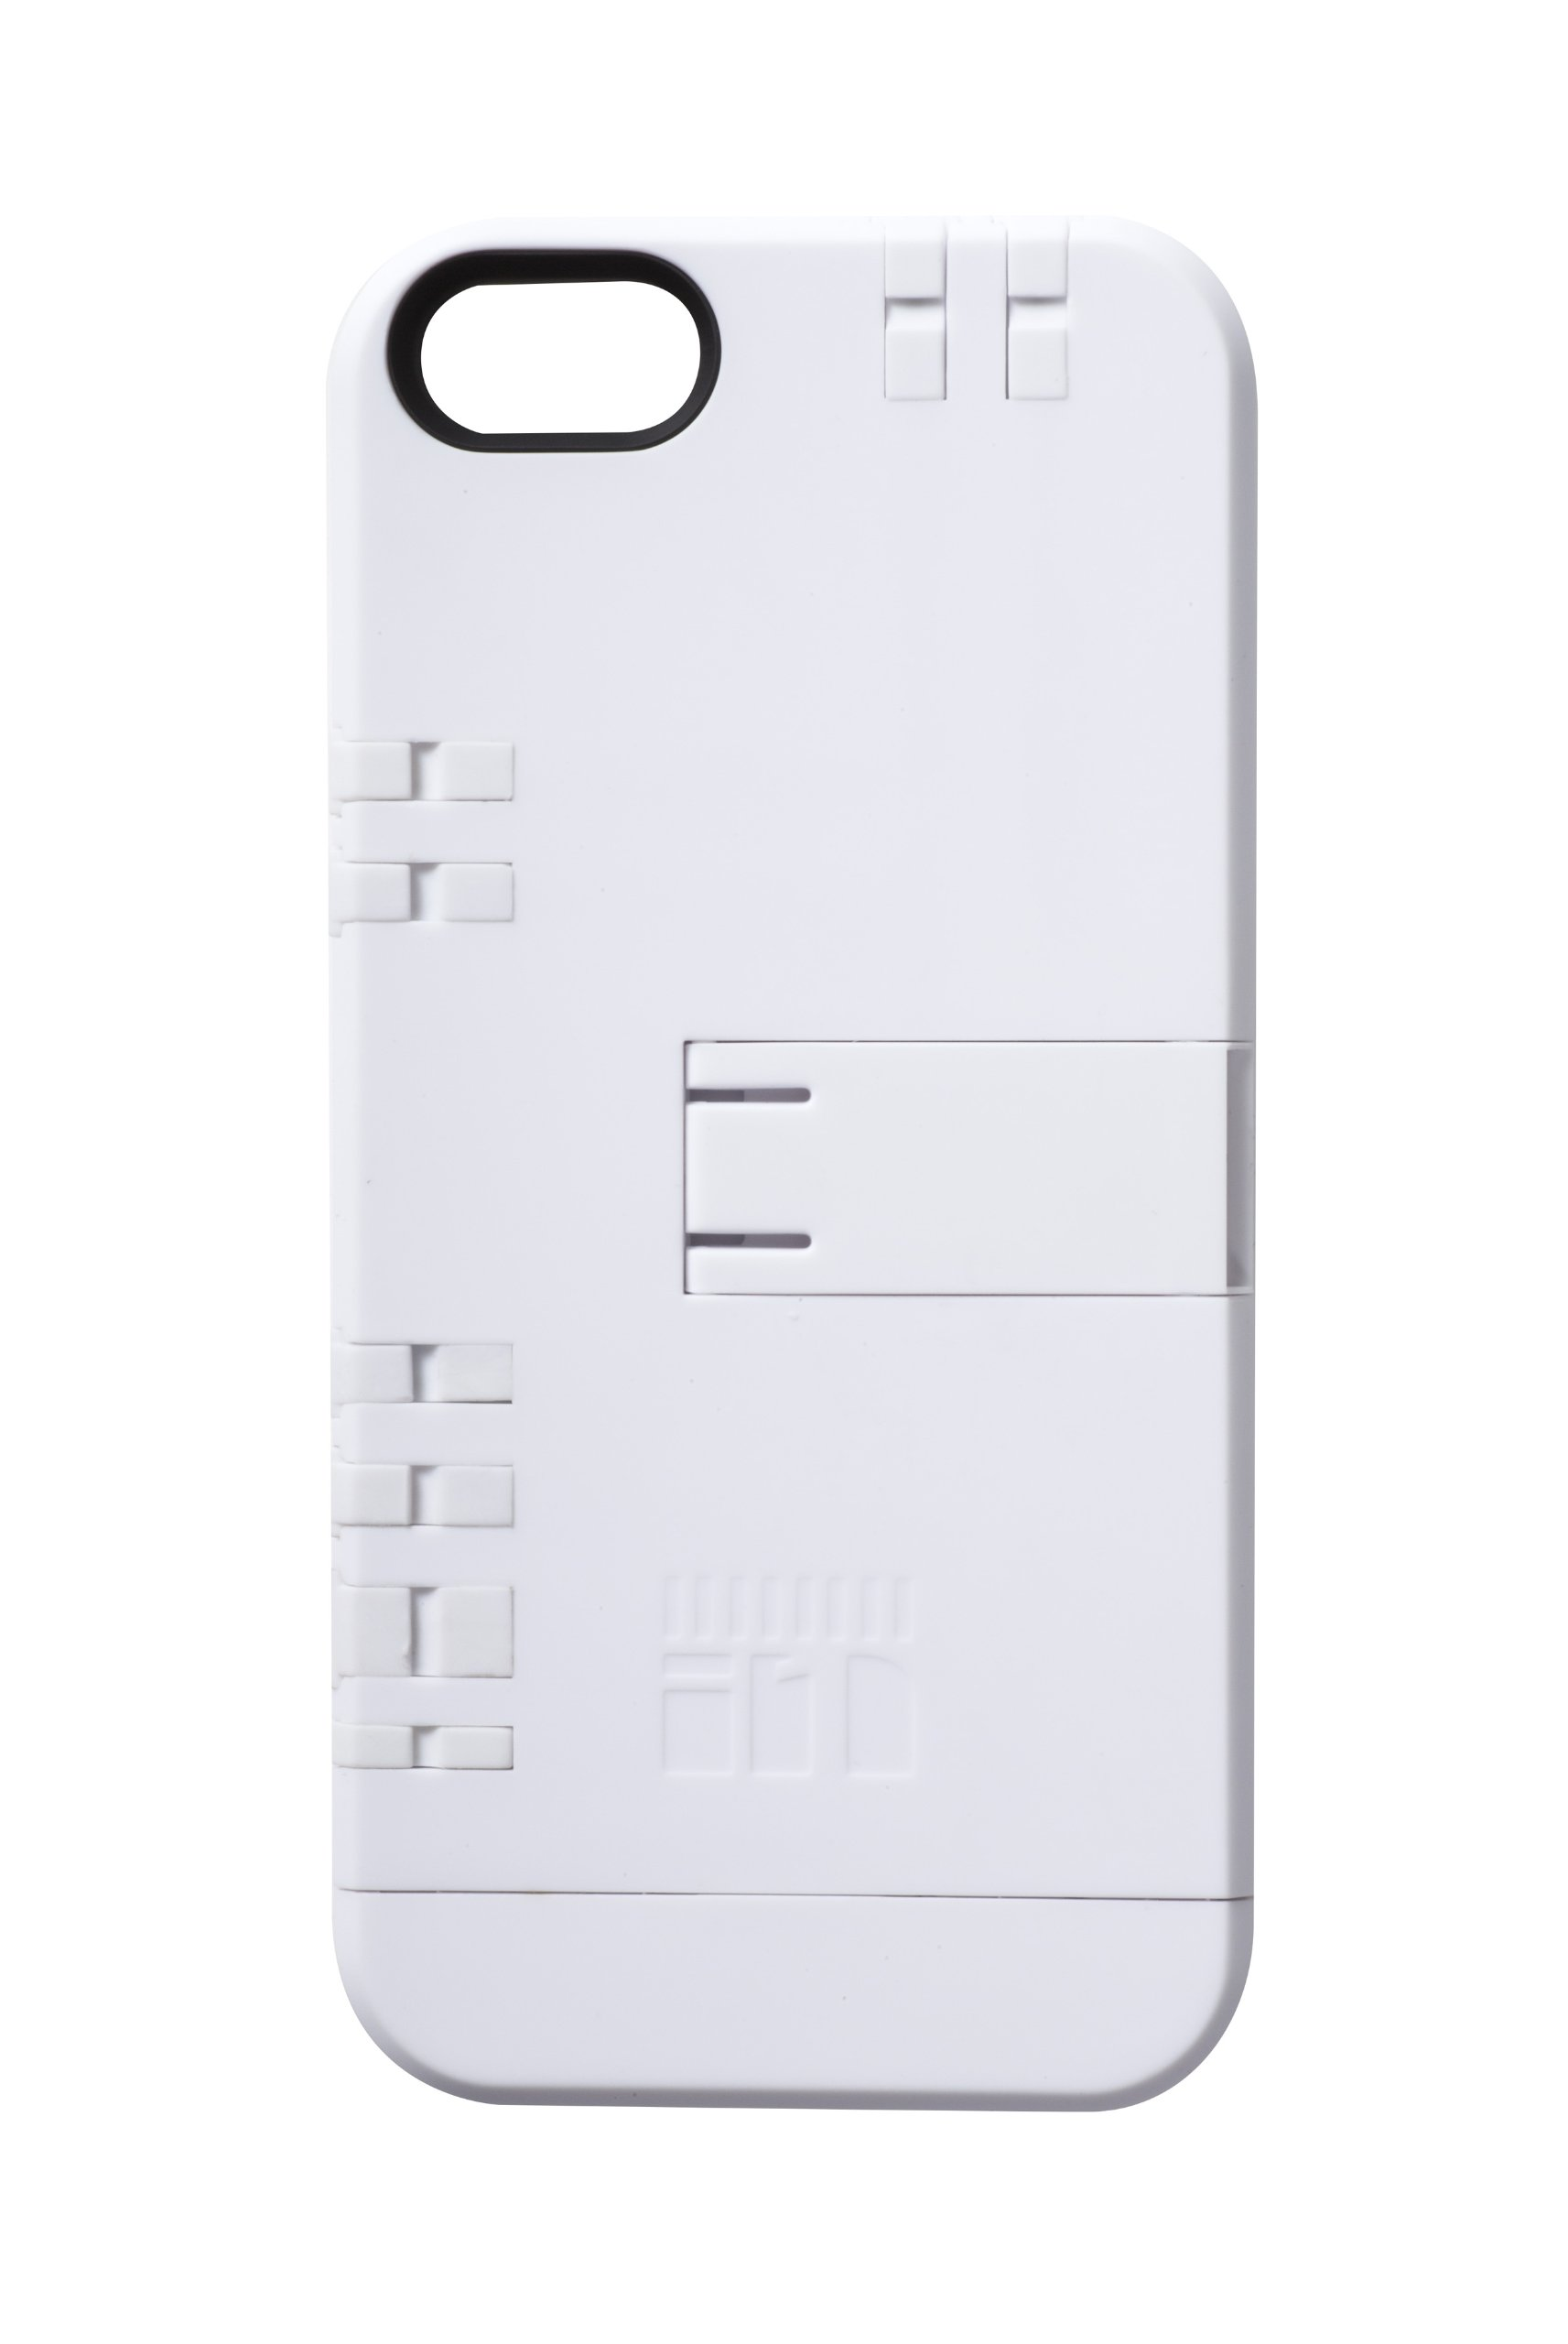 In1 Multi Tool Case For Iphone 5 - Retail Packaging - White With White Tools 8